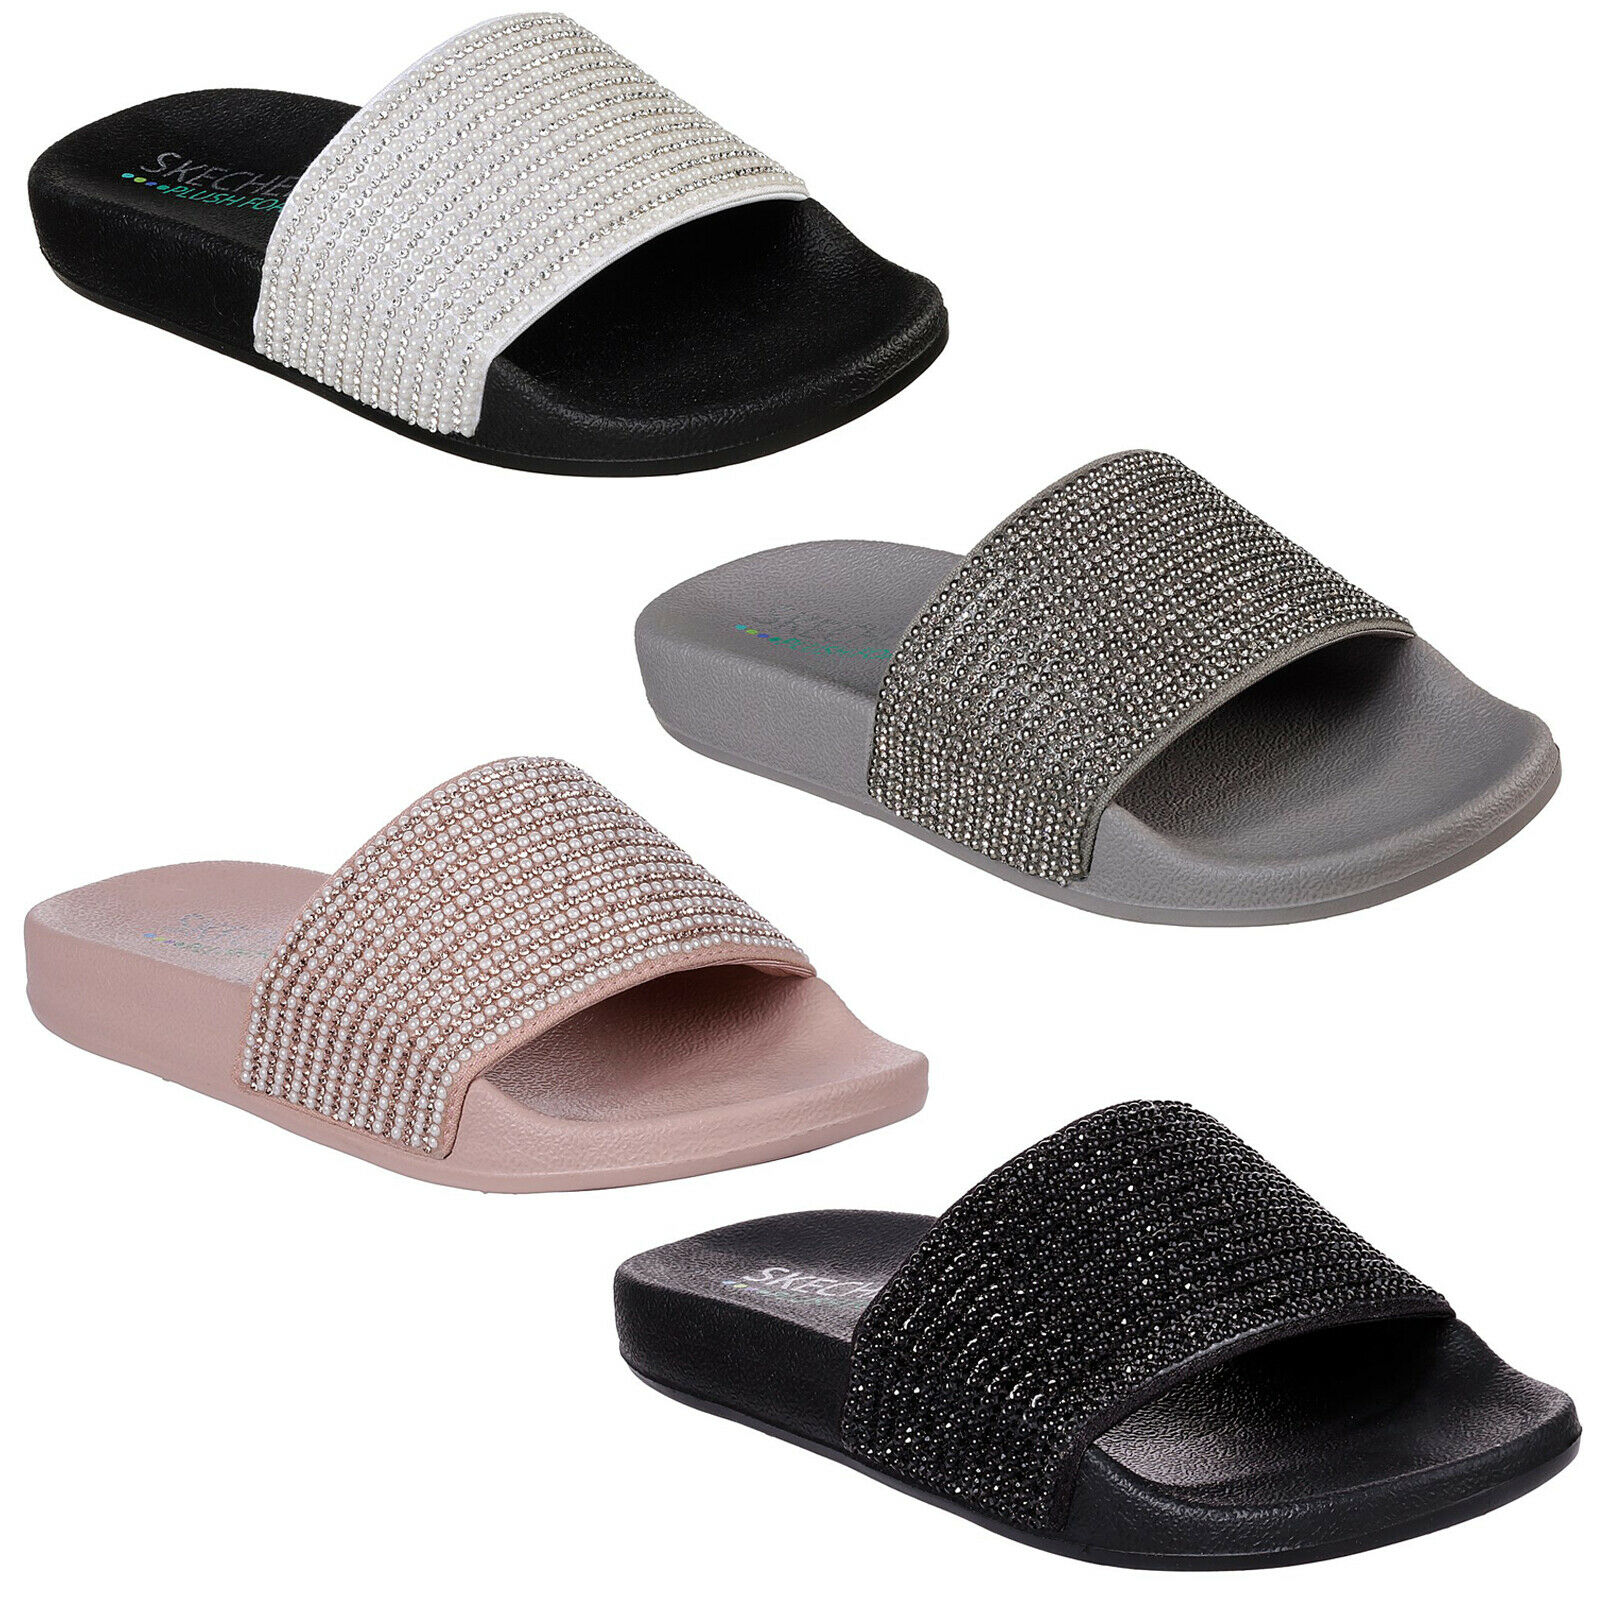 Skechers Pop Ups - Halo Power Slides